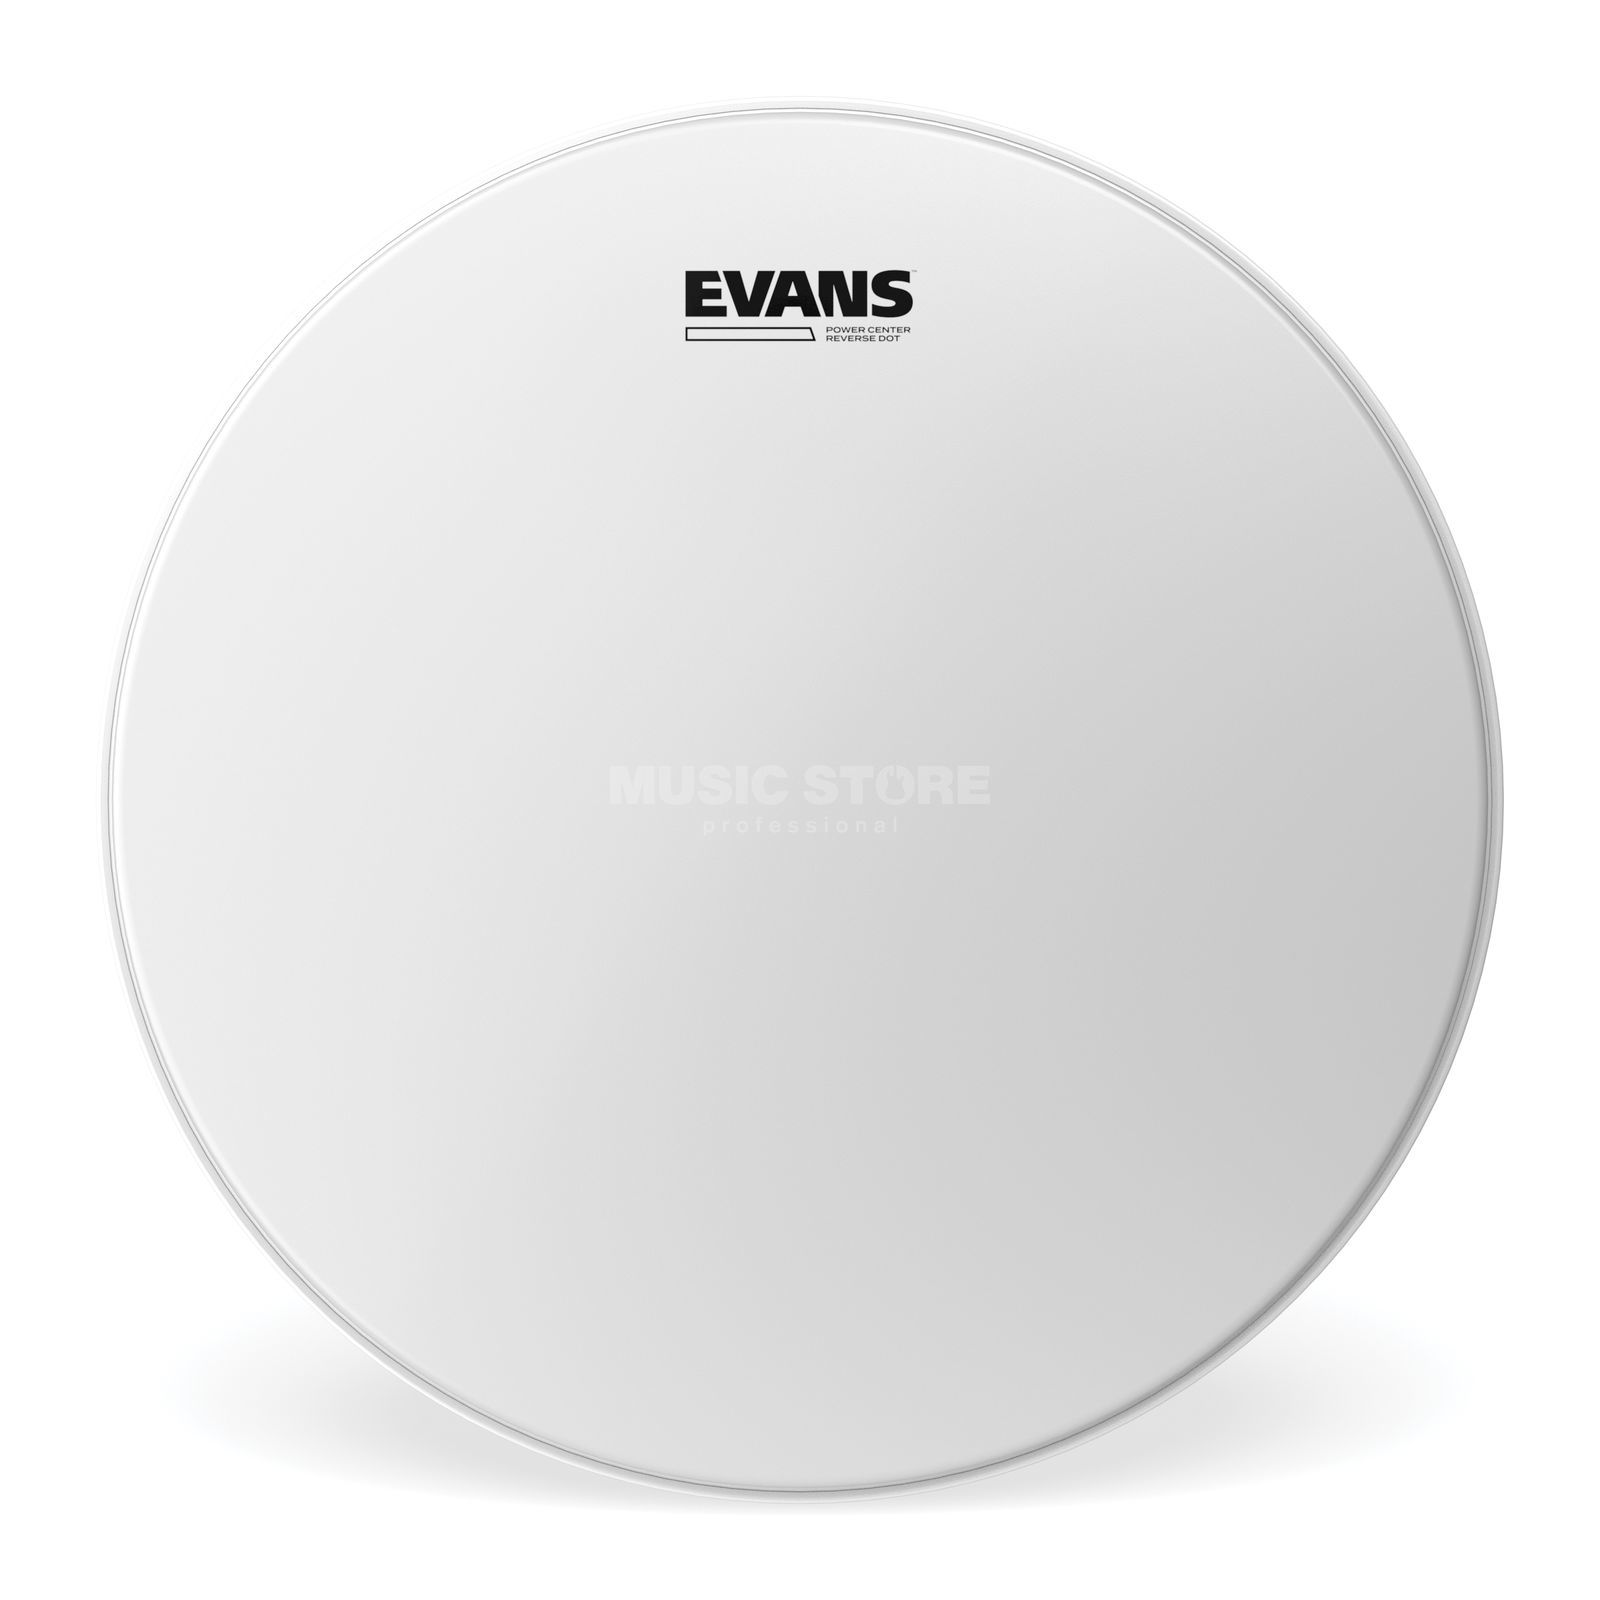 "Evans Power Center 14"", B14G1RD, Reverse Dot, Snare Batter Productafbeelding"